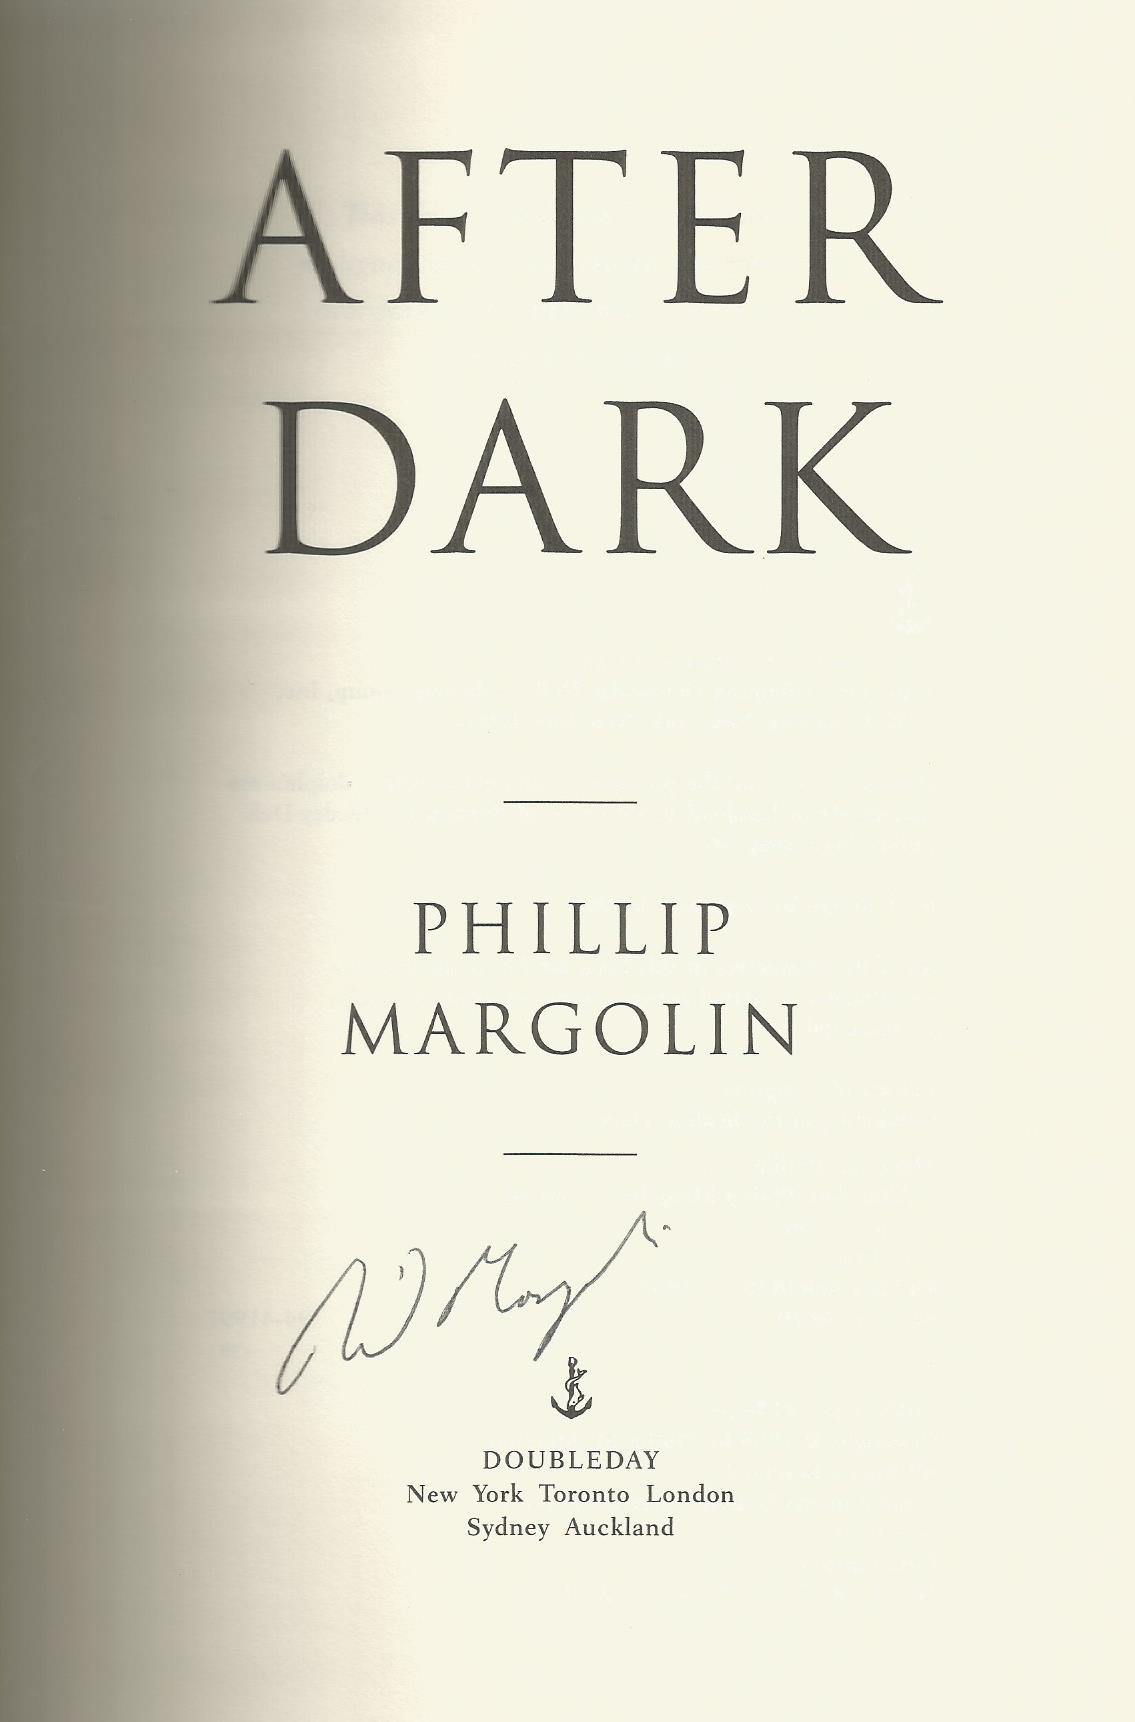 Phillip Margolin